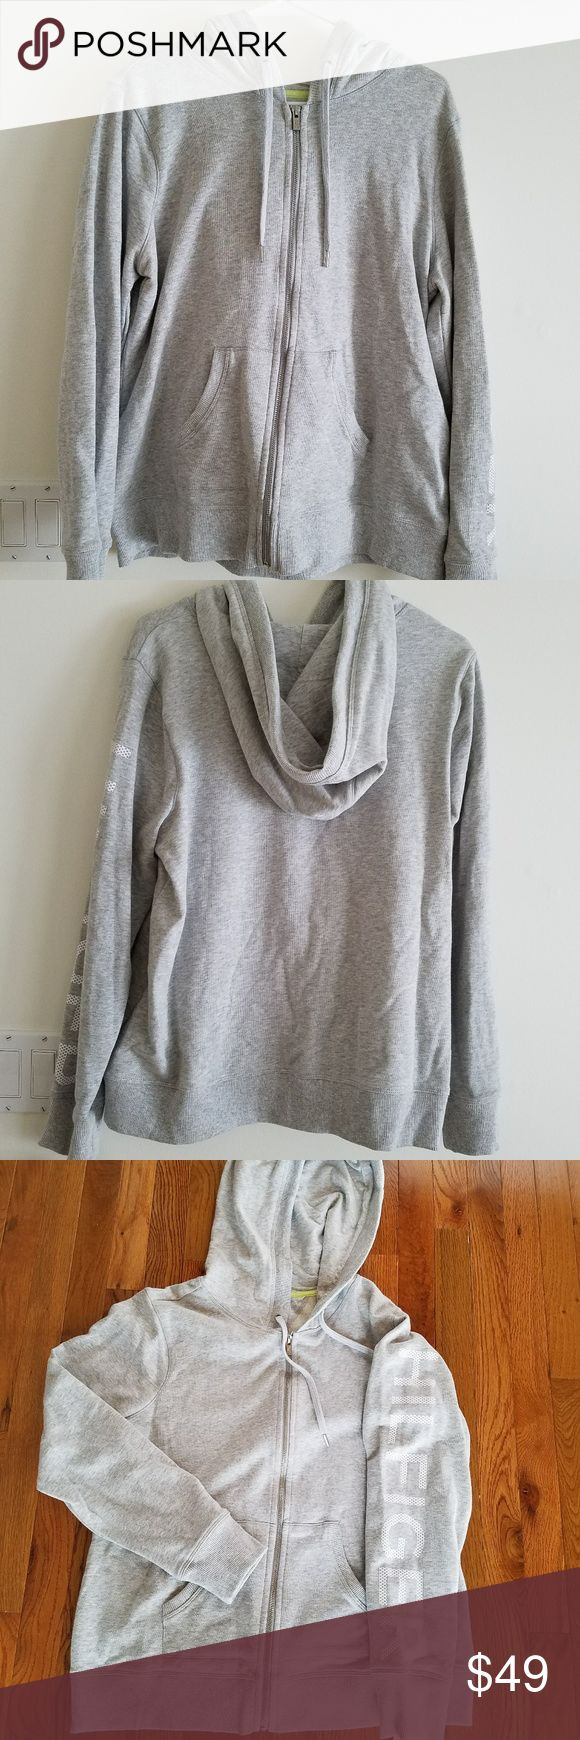 Tommy Hilfiger Sport Women's Hoodie, XL Tommy Hilfiger Sport Women's Hoodie, Brand New with tags attached, never been worn. Light grey, size XL. Zip-up front, two open hand pockets, hood with adjustable strings. All solid grey except one sleeve has Hilfiger written in white block letters. 100% cotton. Comfy and cozy! Make an offer! Tommy Hilfiger Tops Sweatshirts & Hoodies